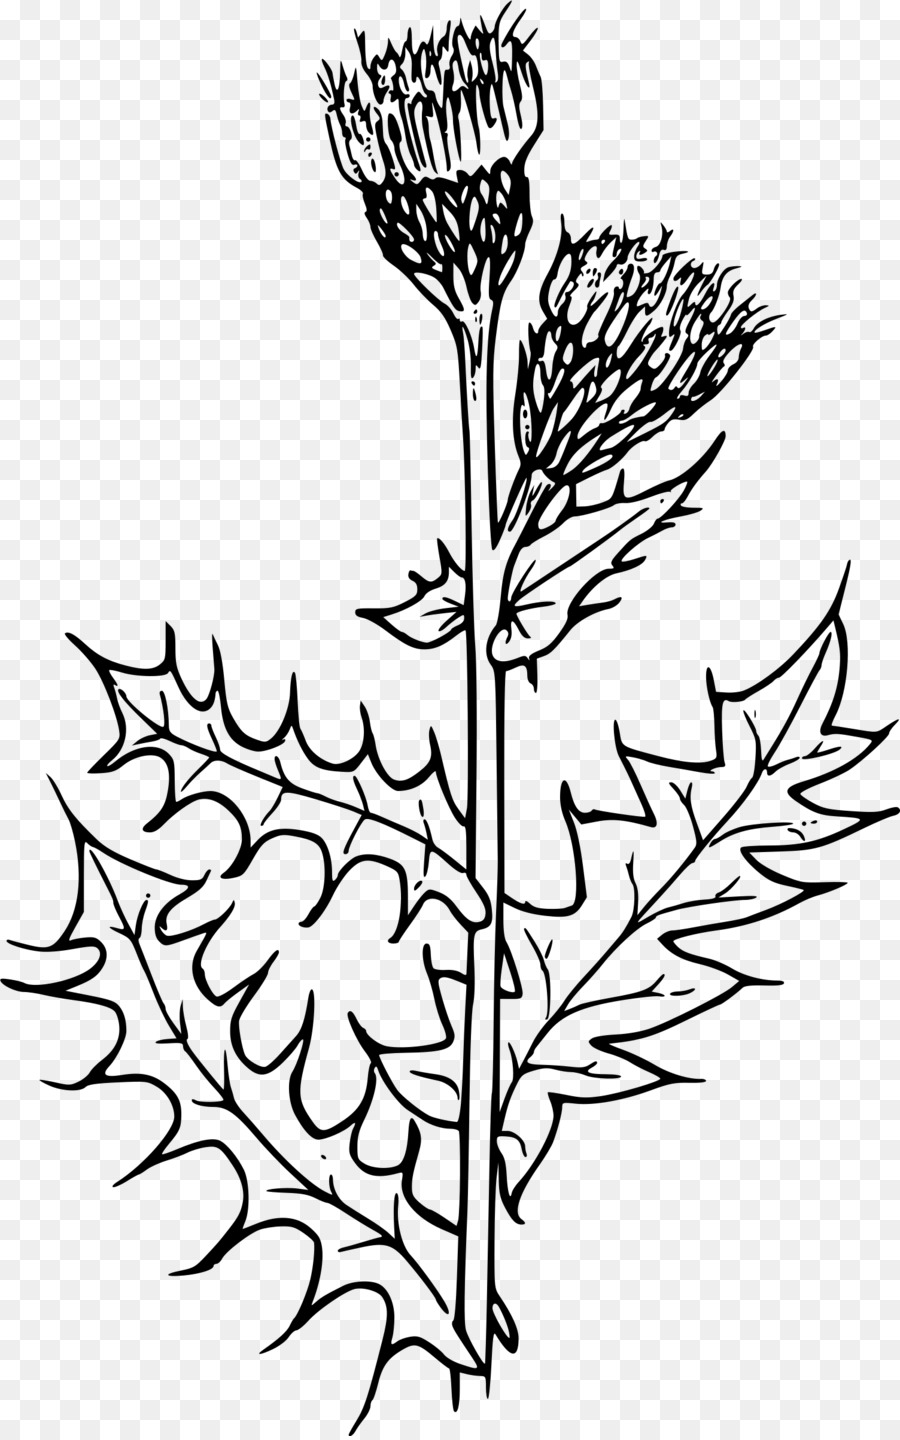 Creeping Thistle Milk Thistle Flower Clip Art Thistle Png Download